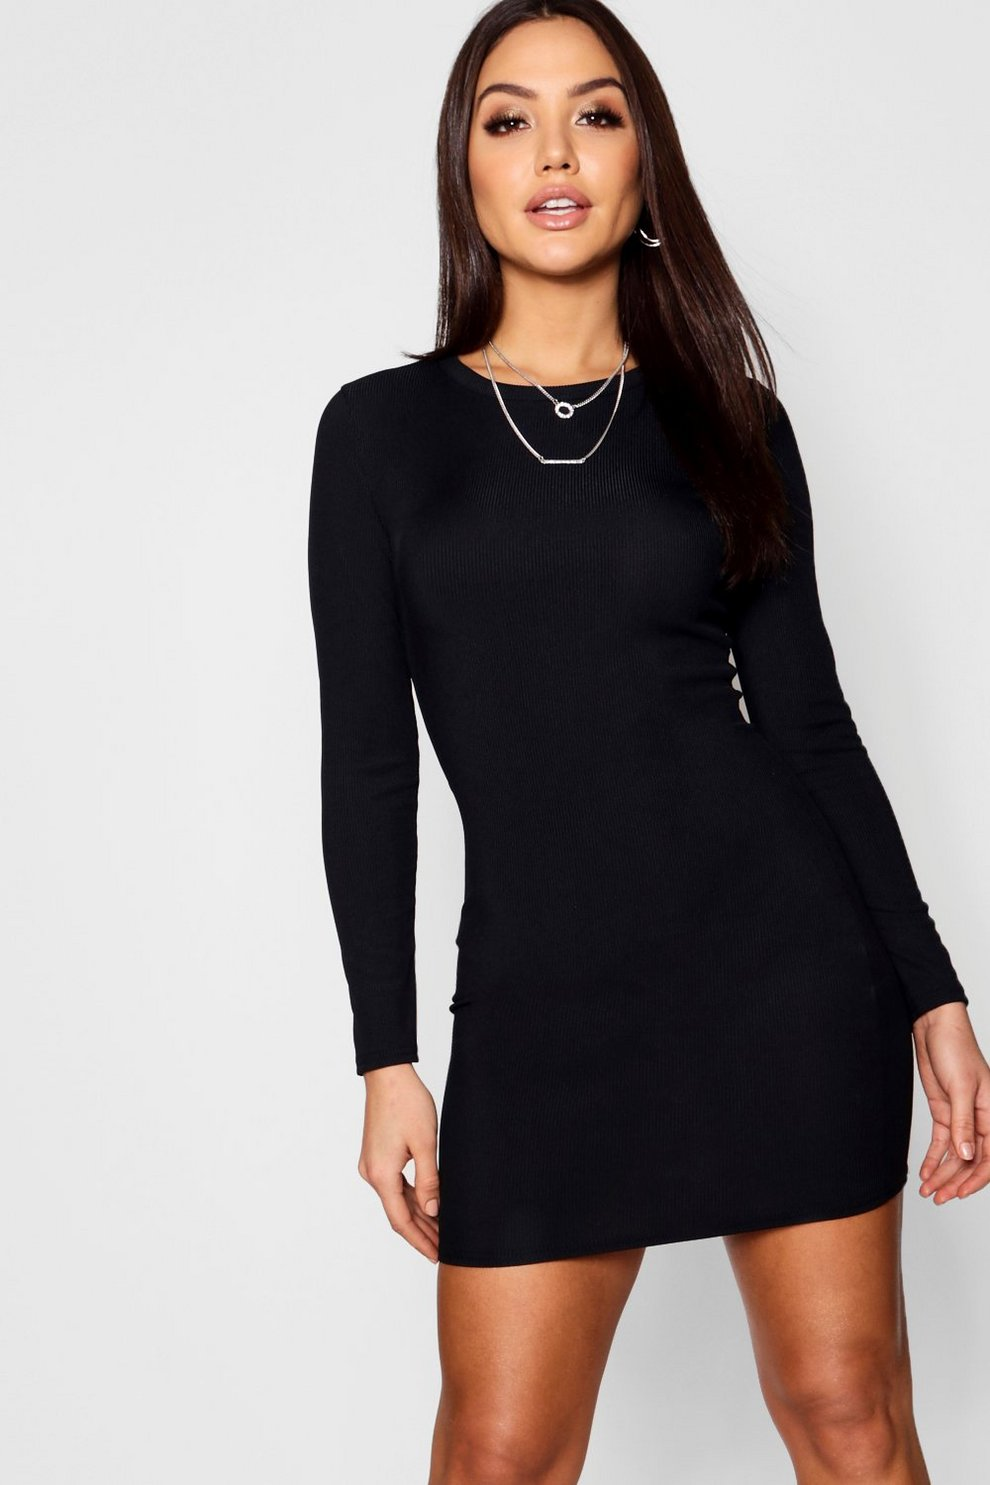 58461a19366a Womens Black Ribbed Basic Long Sleeve Bodycon Dress. Hover to zoom